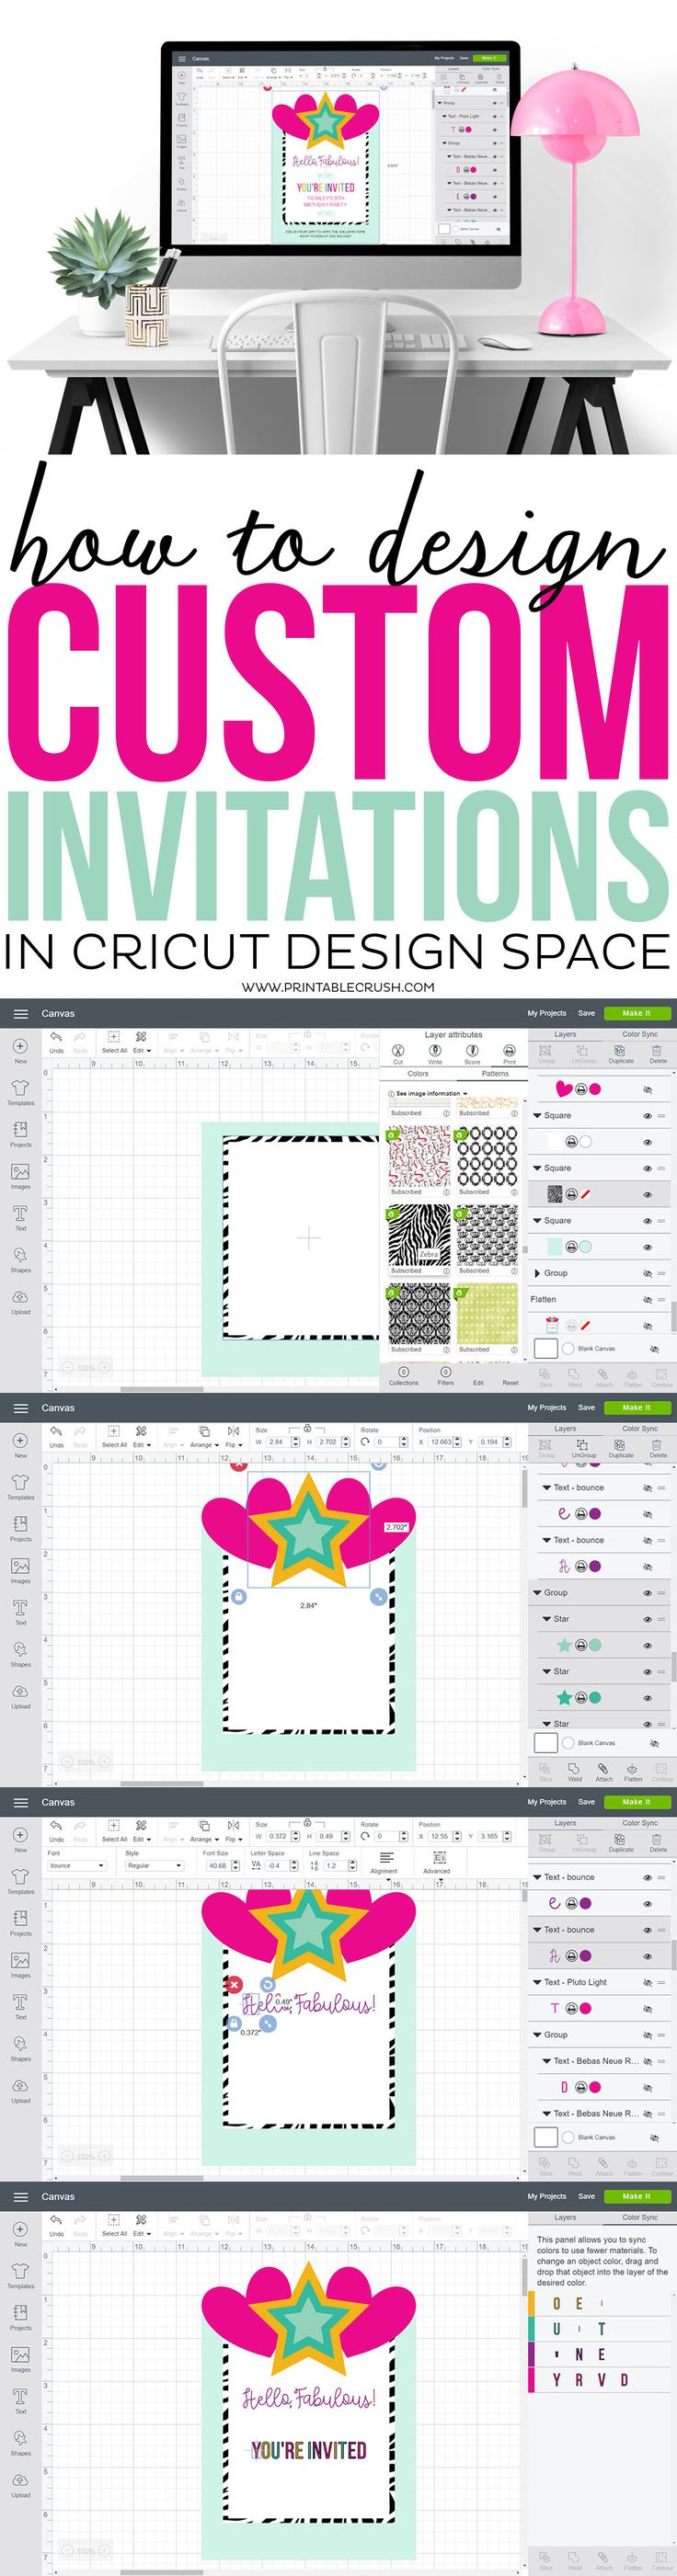 Learn to design custom invitations in Cricut Design Space from scratch! You'll learn how to flatten images for print and cut, plus get an overview of the most used CDS tools.